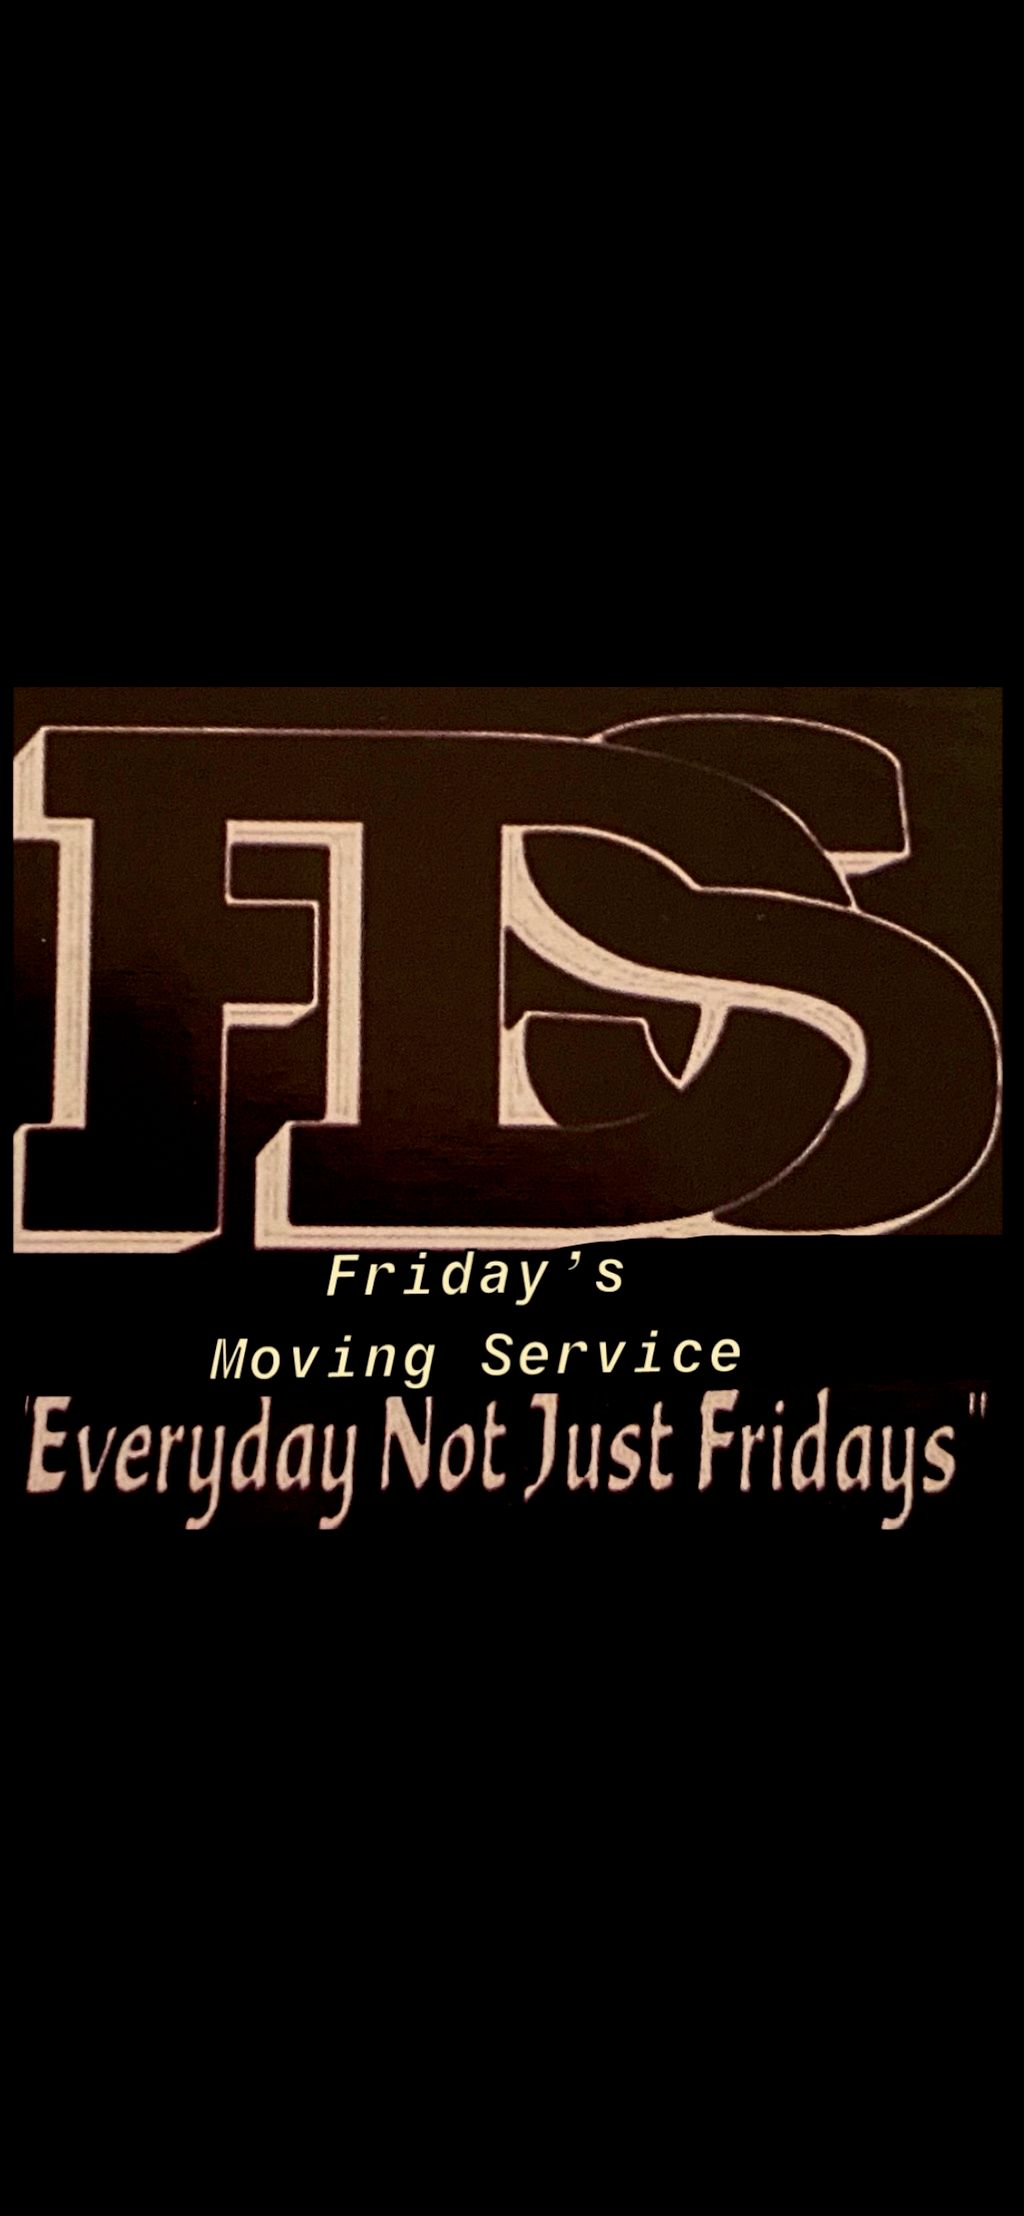 Friday's Moving Service's